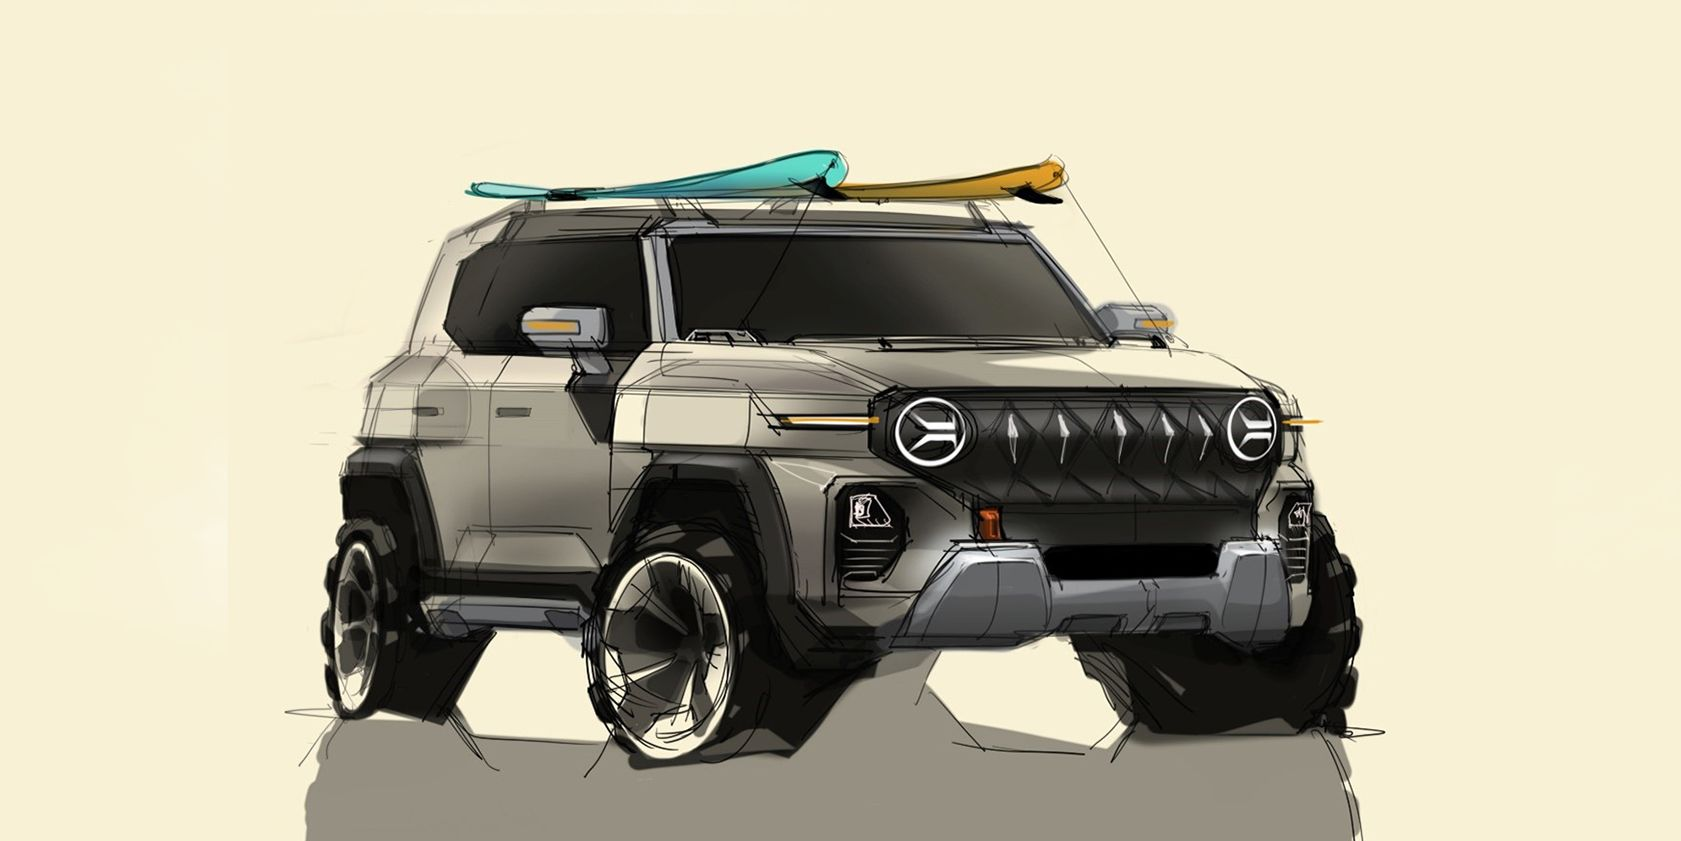 This South Korean Automaker Has Jeep DNA